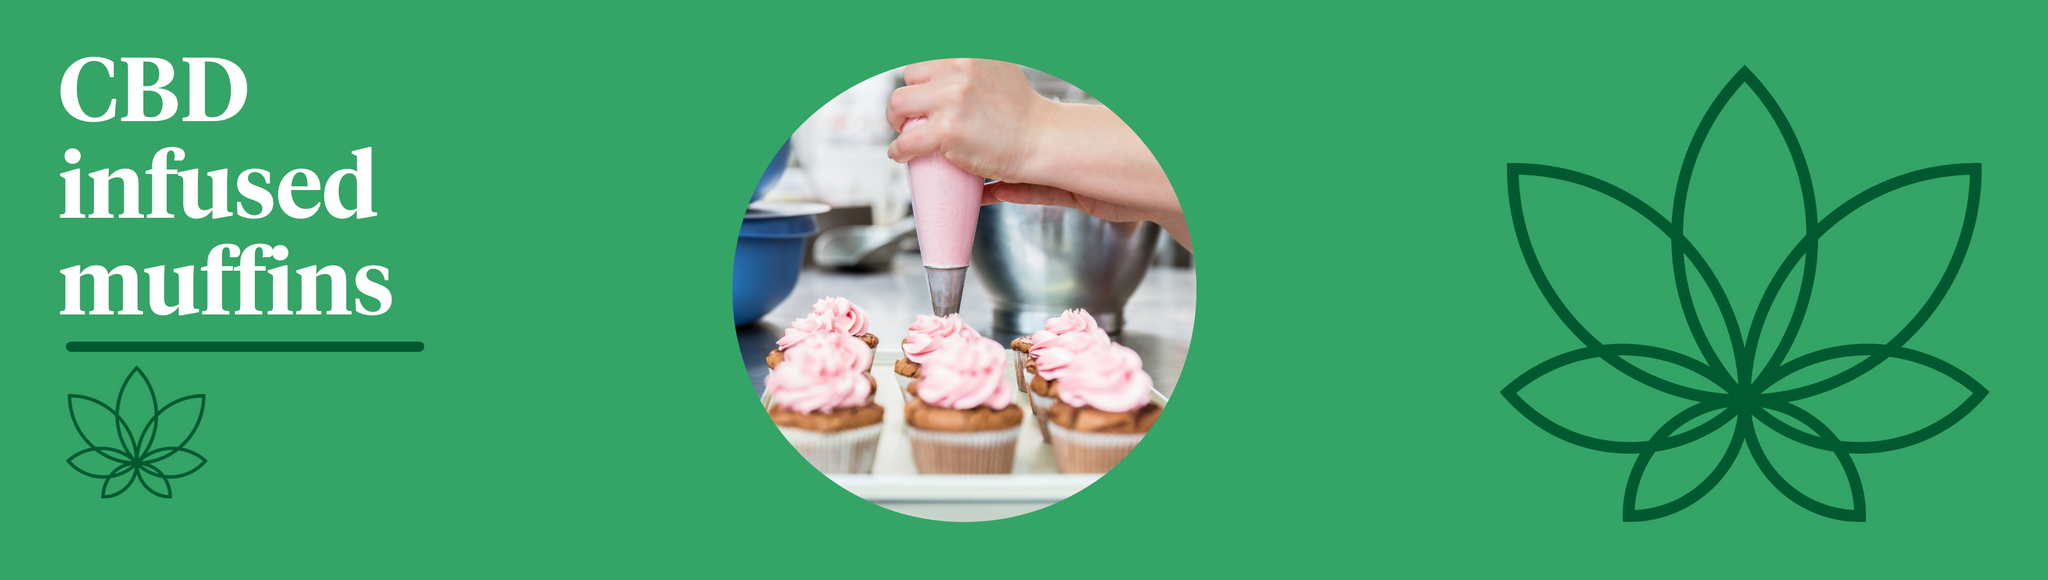 A green background with the Supreme CBD logo to the right and a selection of cbd infused muffins in the centre showing the best way to take CBD oil.